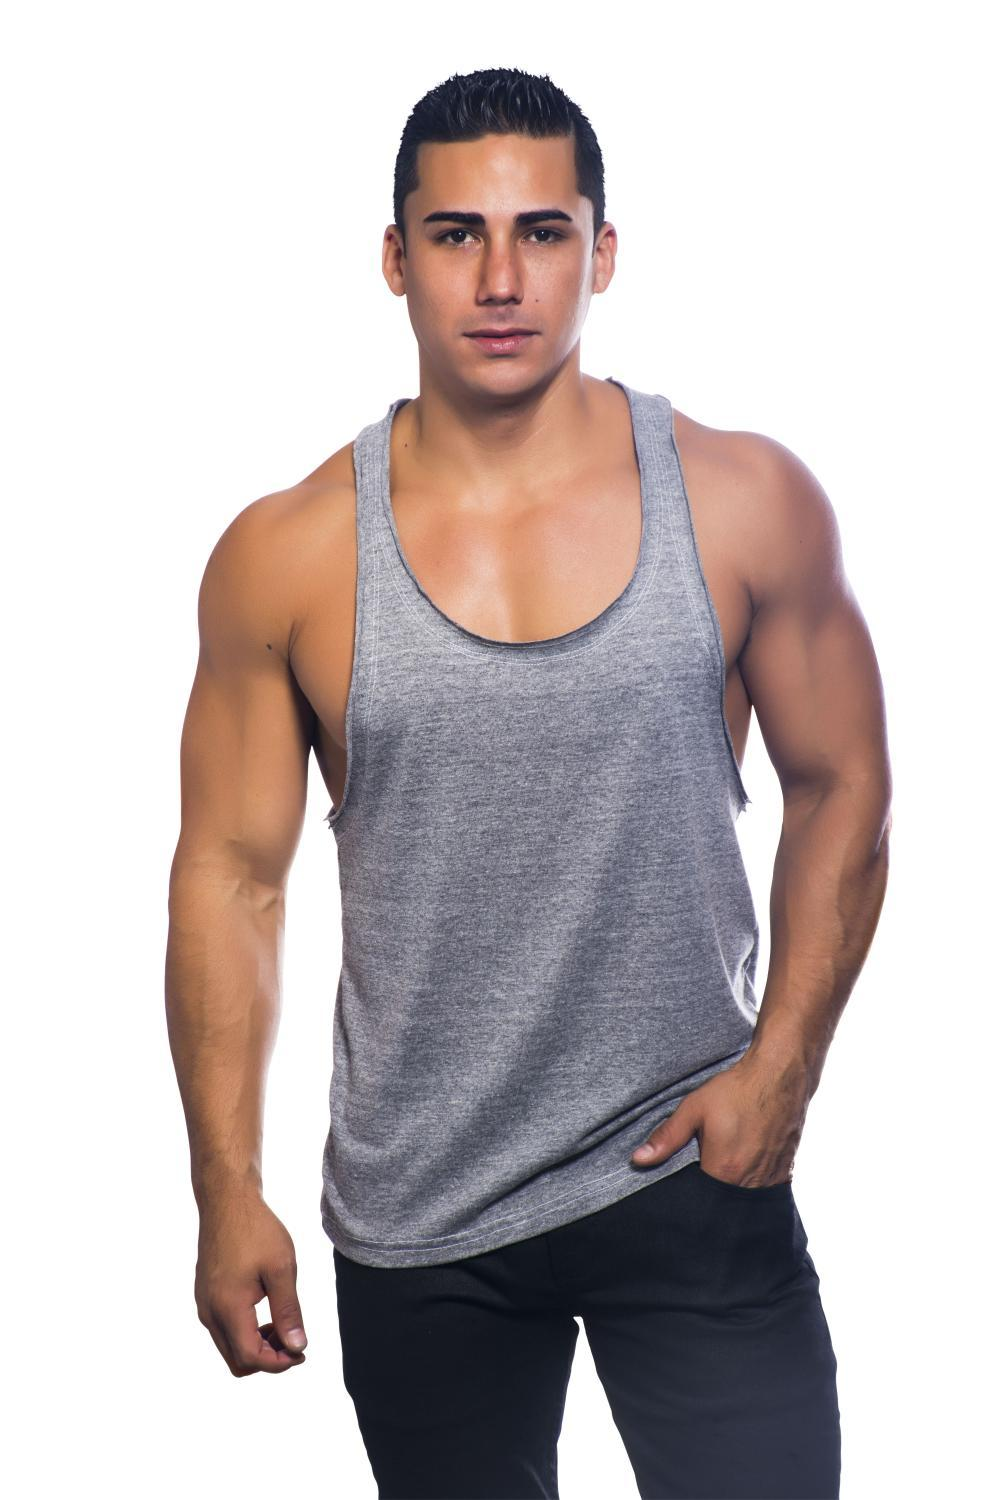 Vibe Racer Back Gym Tank VINTAGE HEATHER By Andrew Christian  アンドリュークリスチャン(アンクリ)